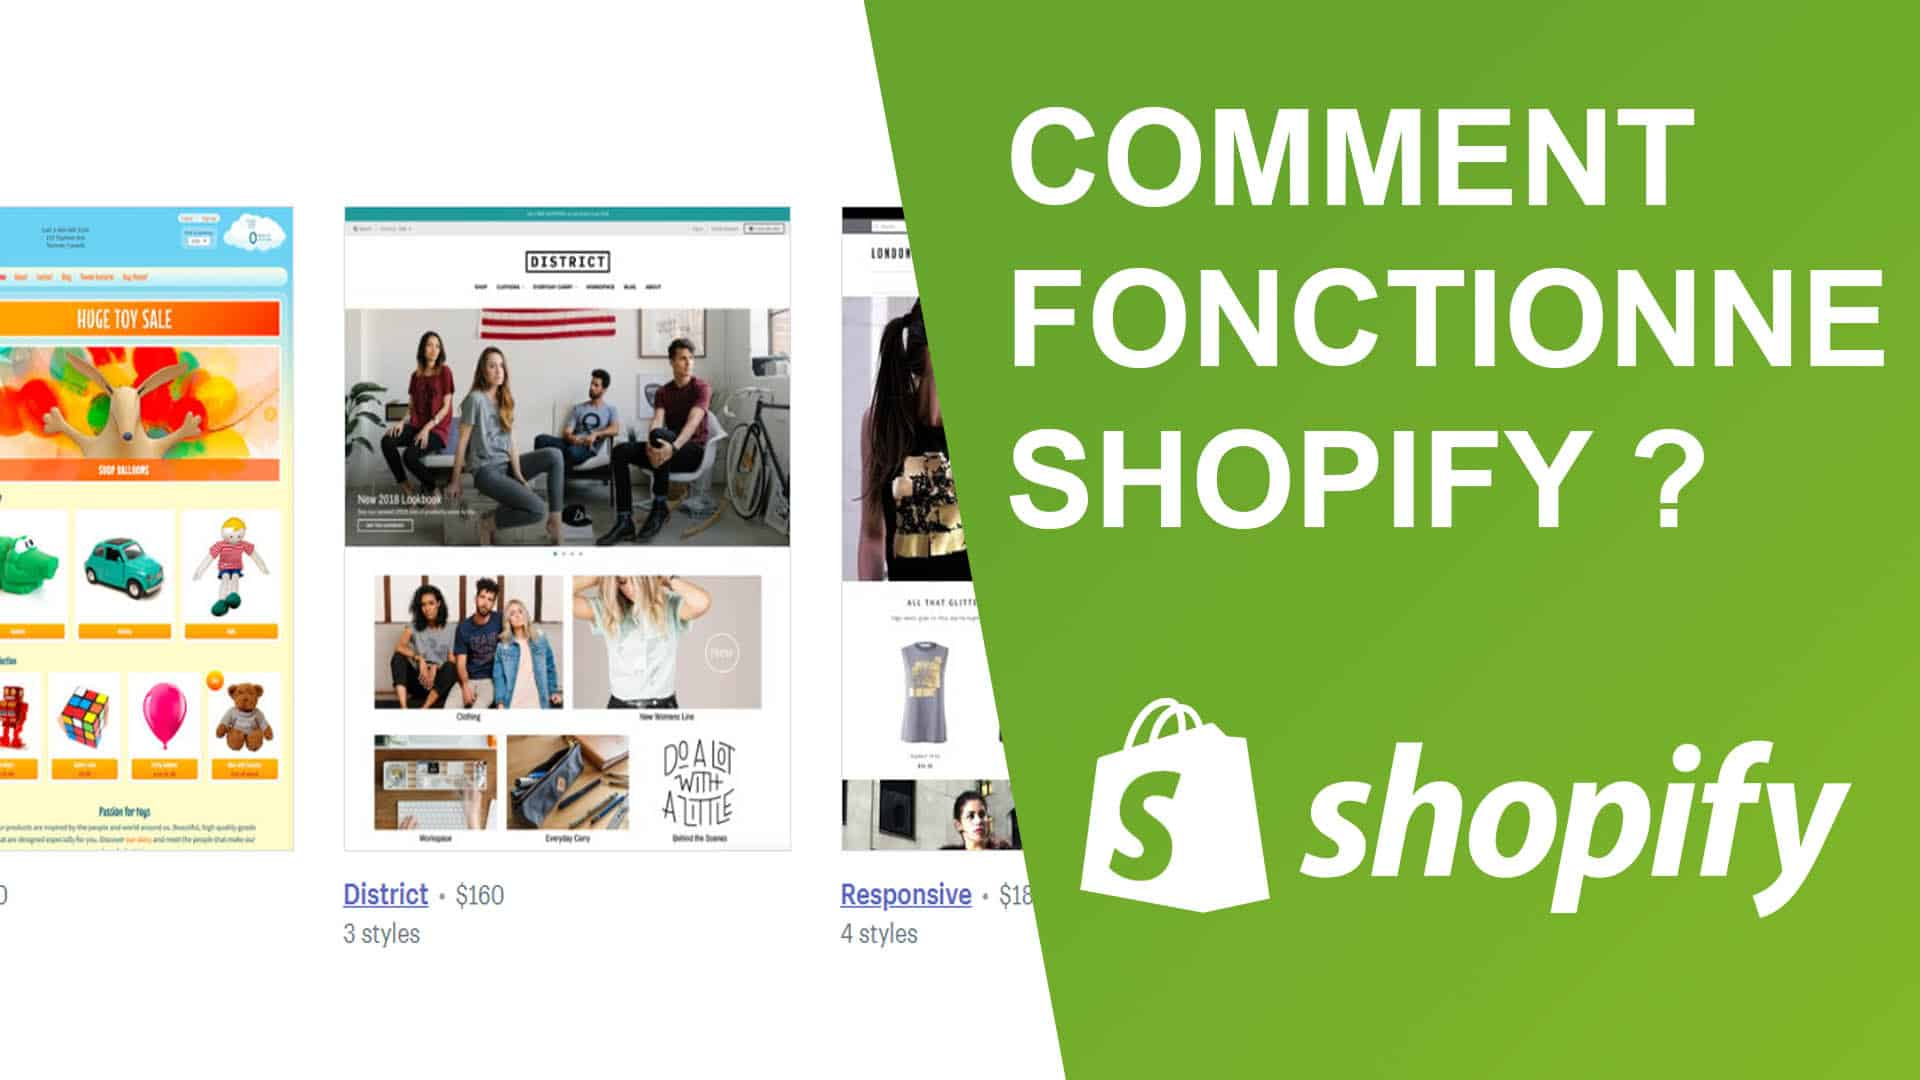 Comment fonctionne shopify ?